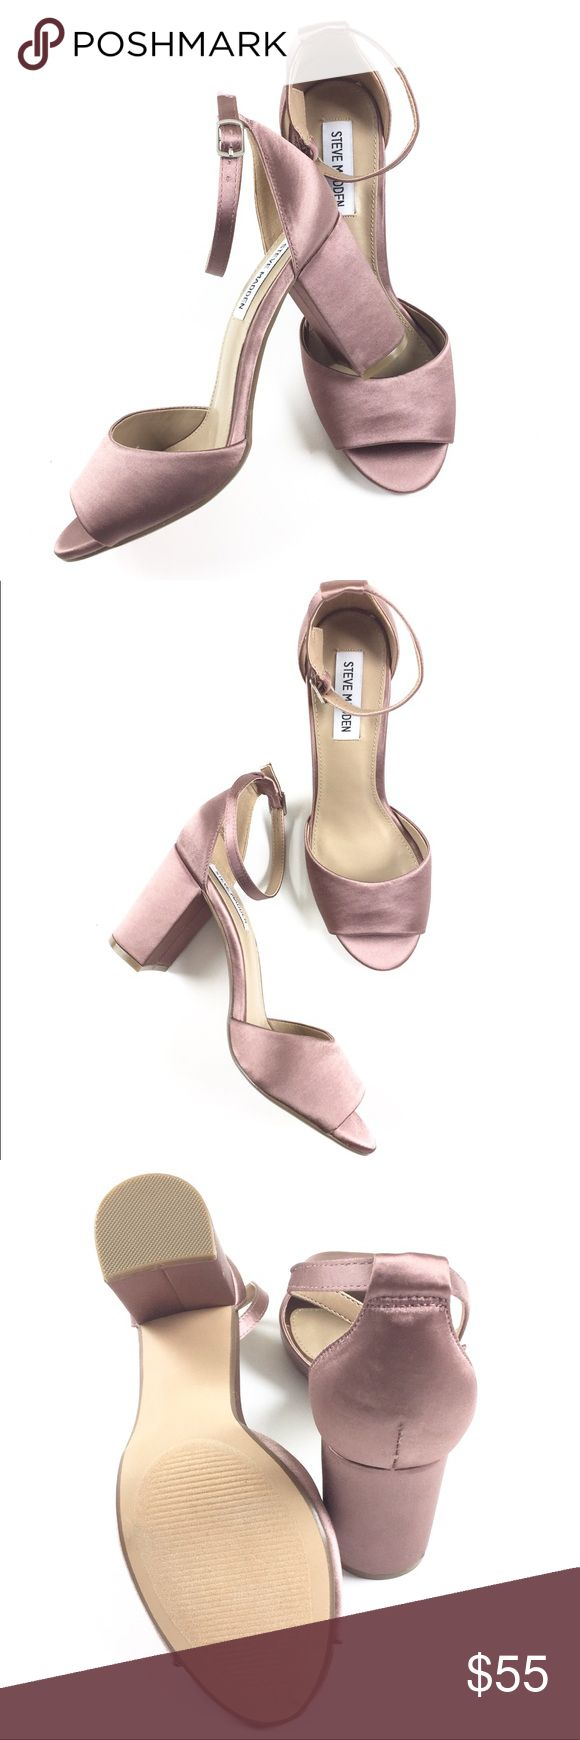 Steve Madden Heels NWOT Steve Madden satin pink heels with a minimalist look.  Features an adjustable ankle-strap and is set on an on-trend chunky heel. Size 8. Retail $89.50. Steve Madden Shoes